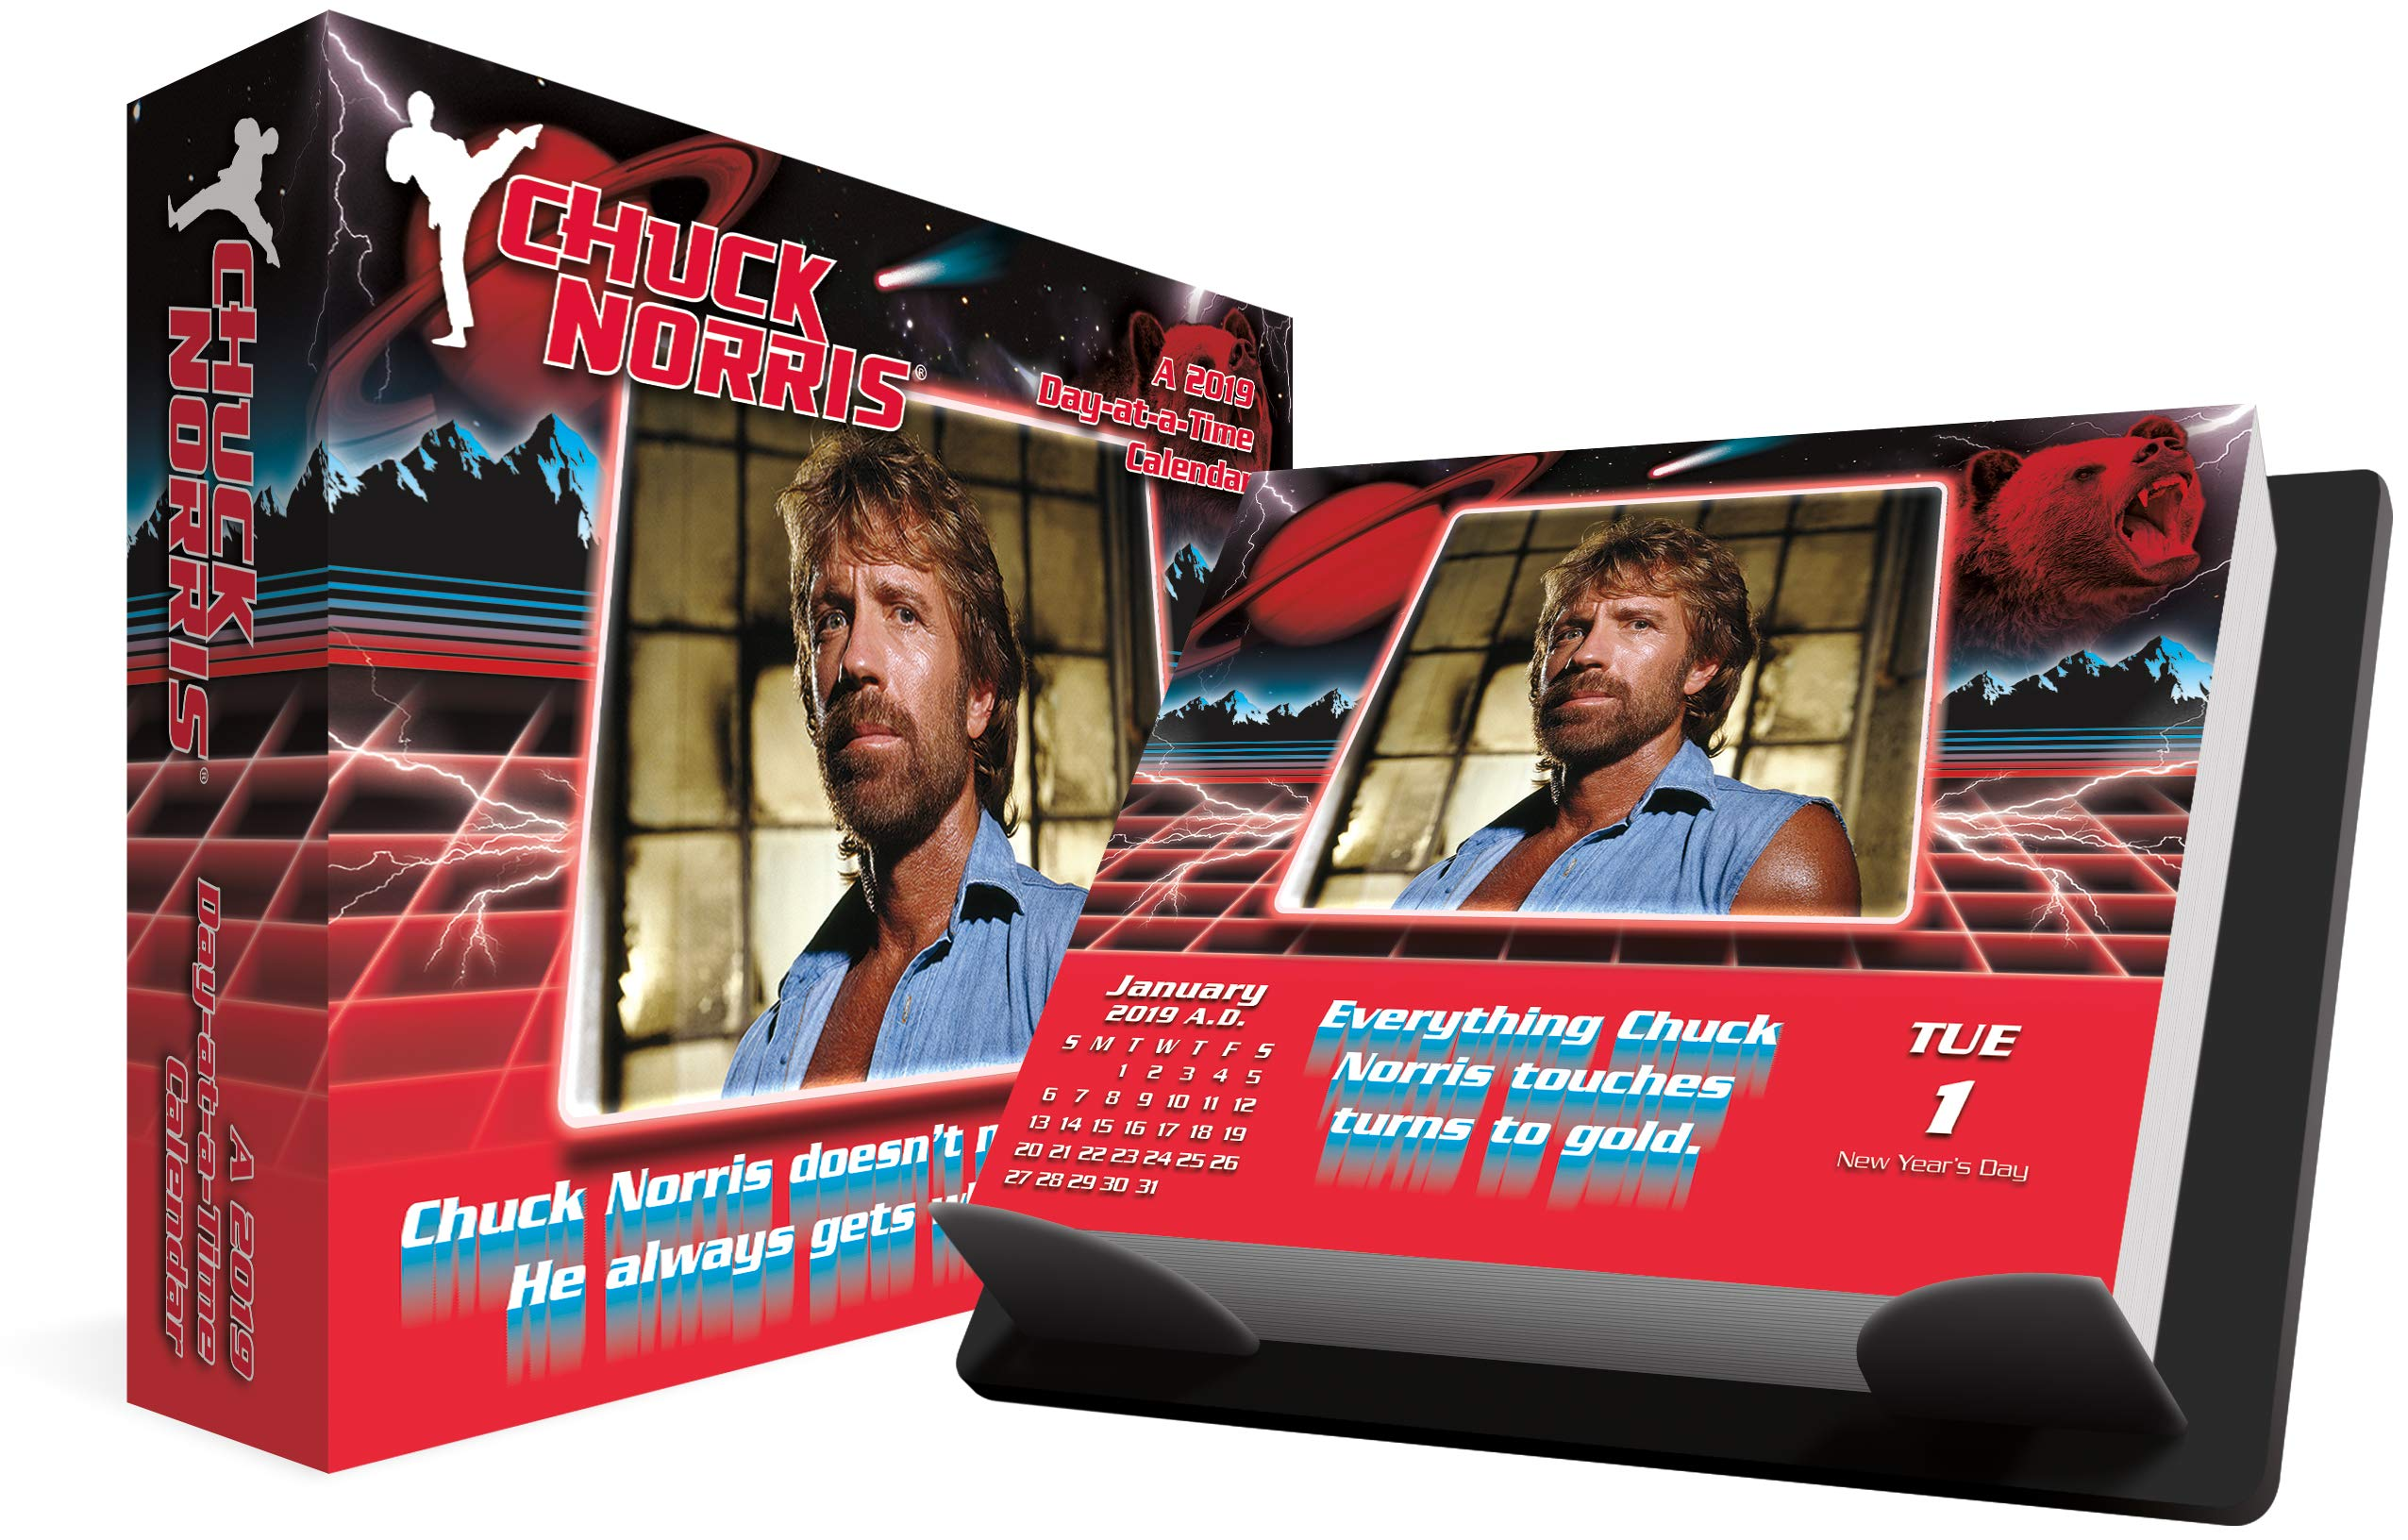 Chuck Norris Quotes Disappointment - Wallpaper Image Photo